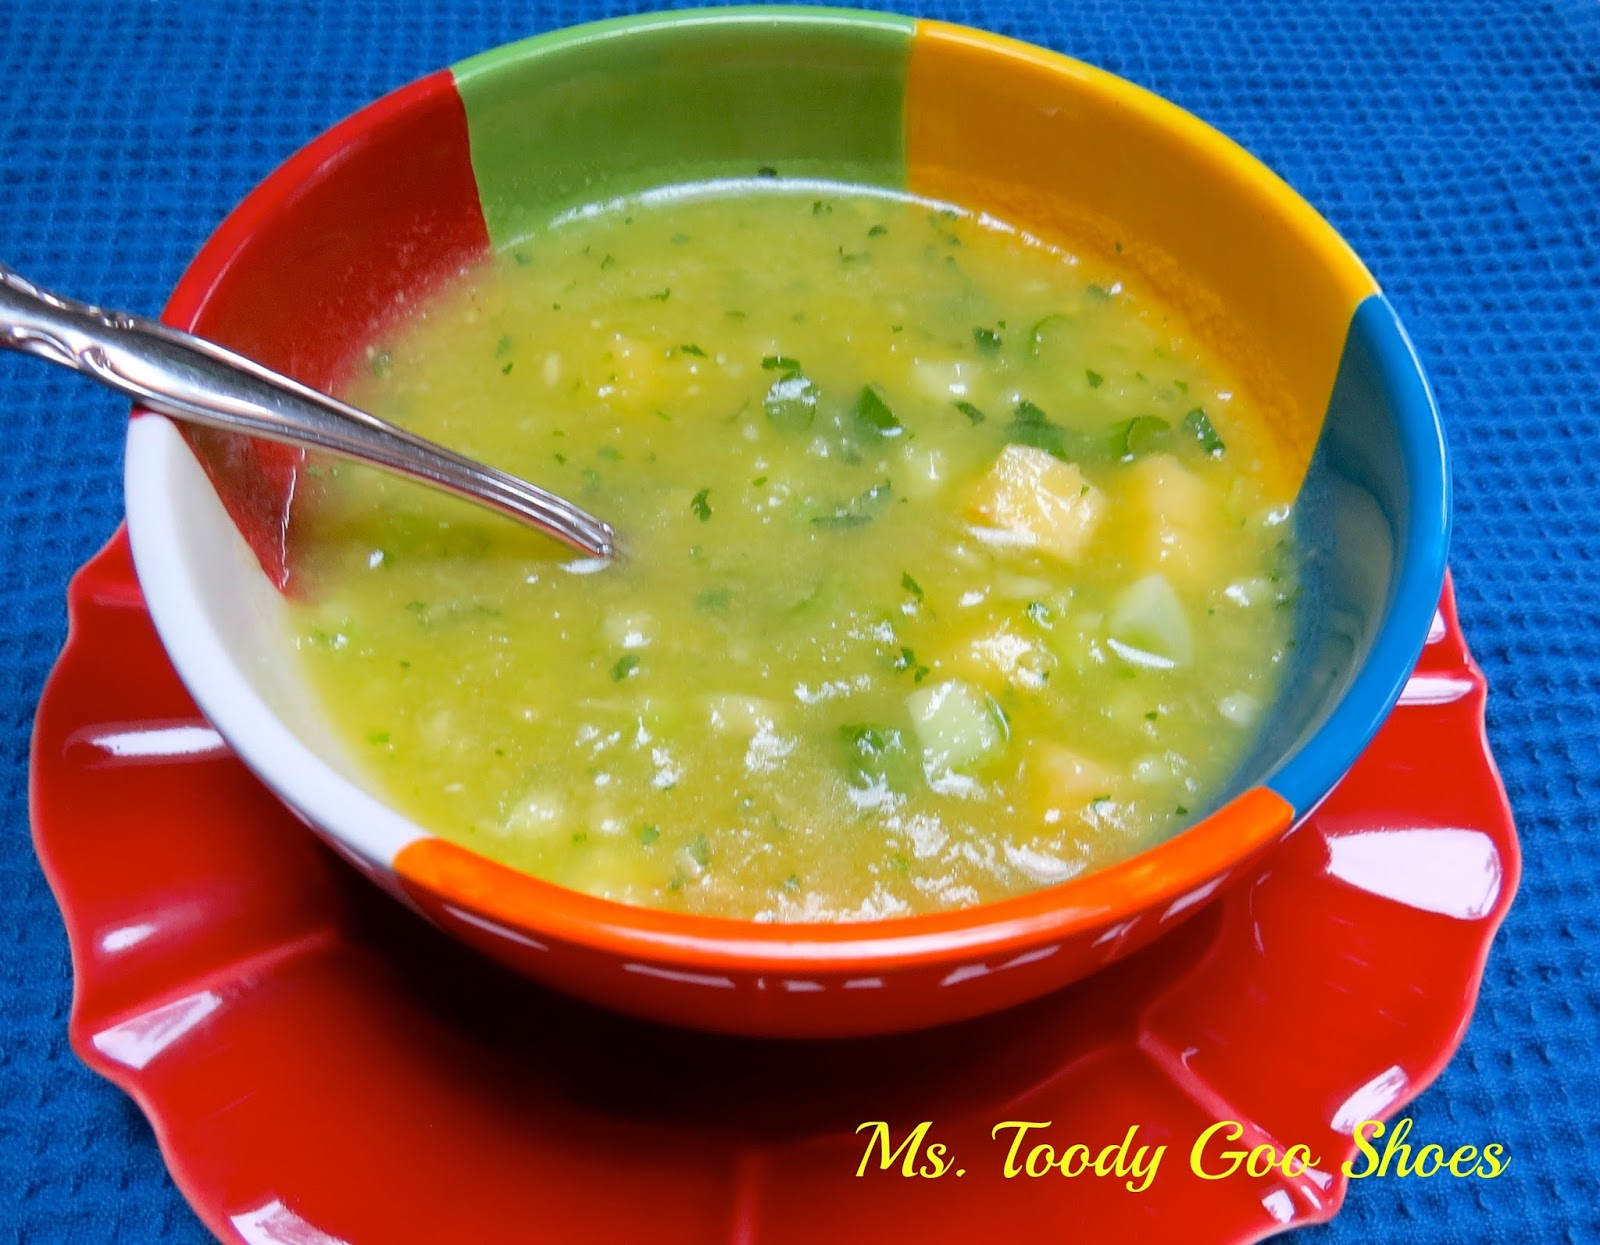 "I'd Rather Do Anything But Cook"" Pineapple Cucumber Gazpacho by Ms. Toody Goo Shoes"